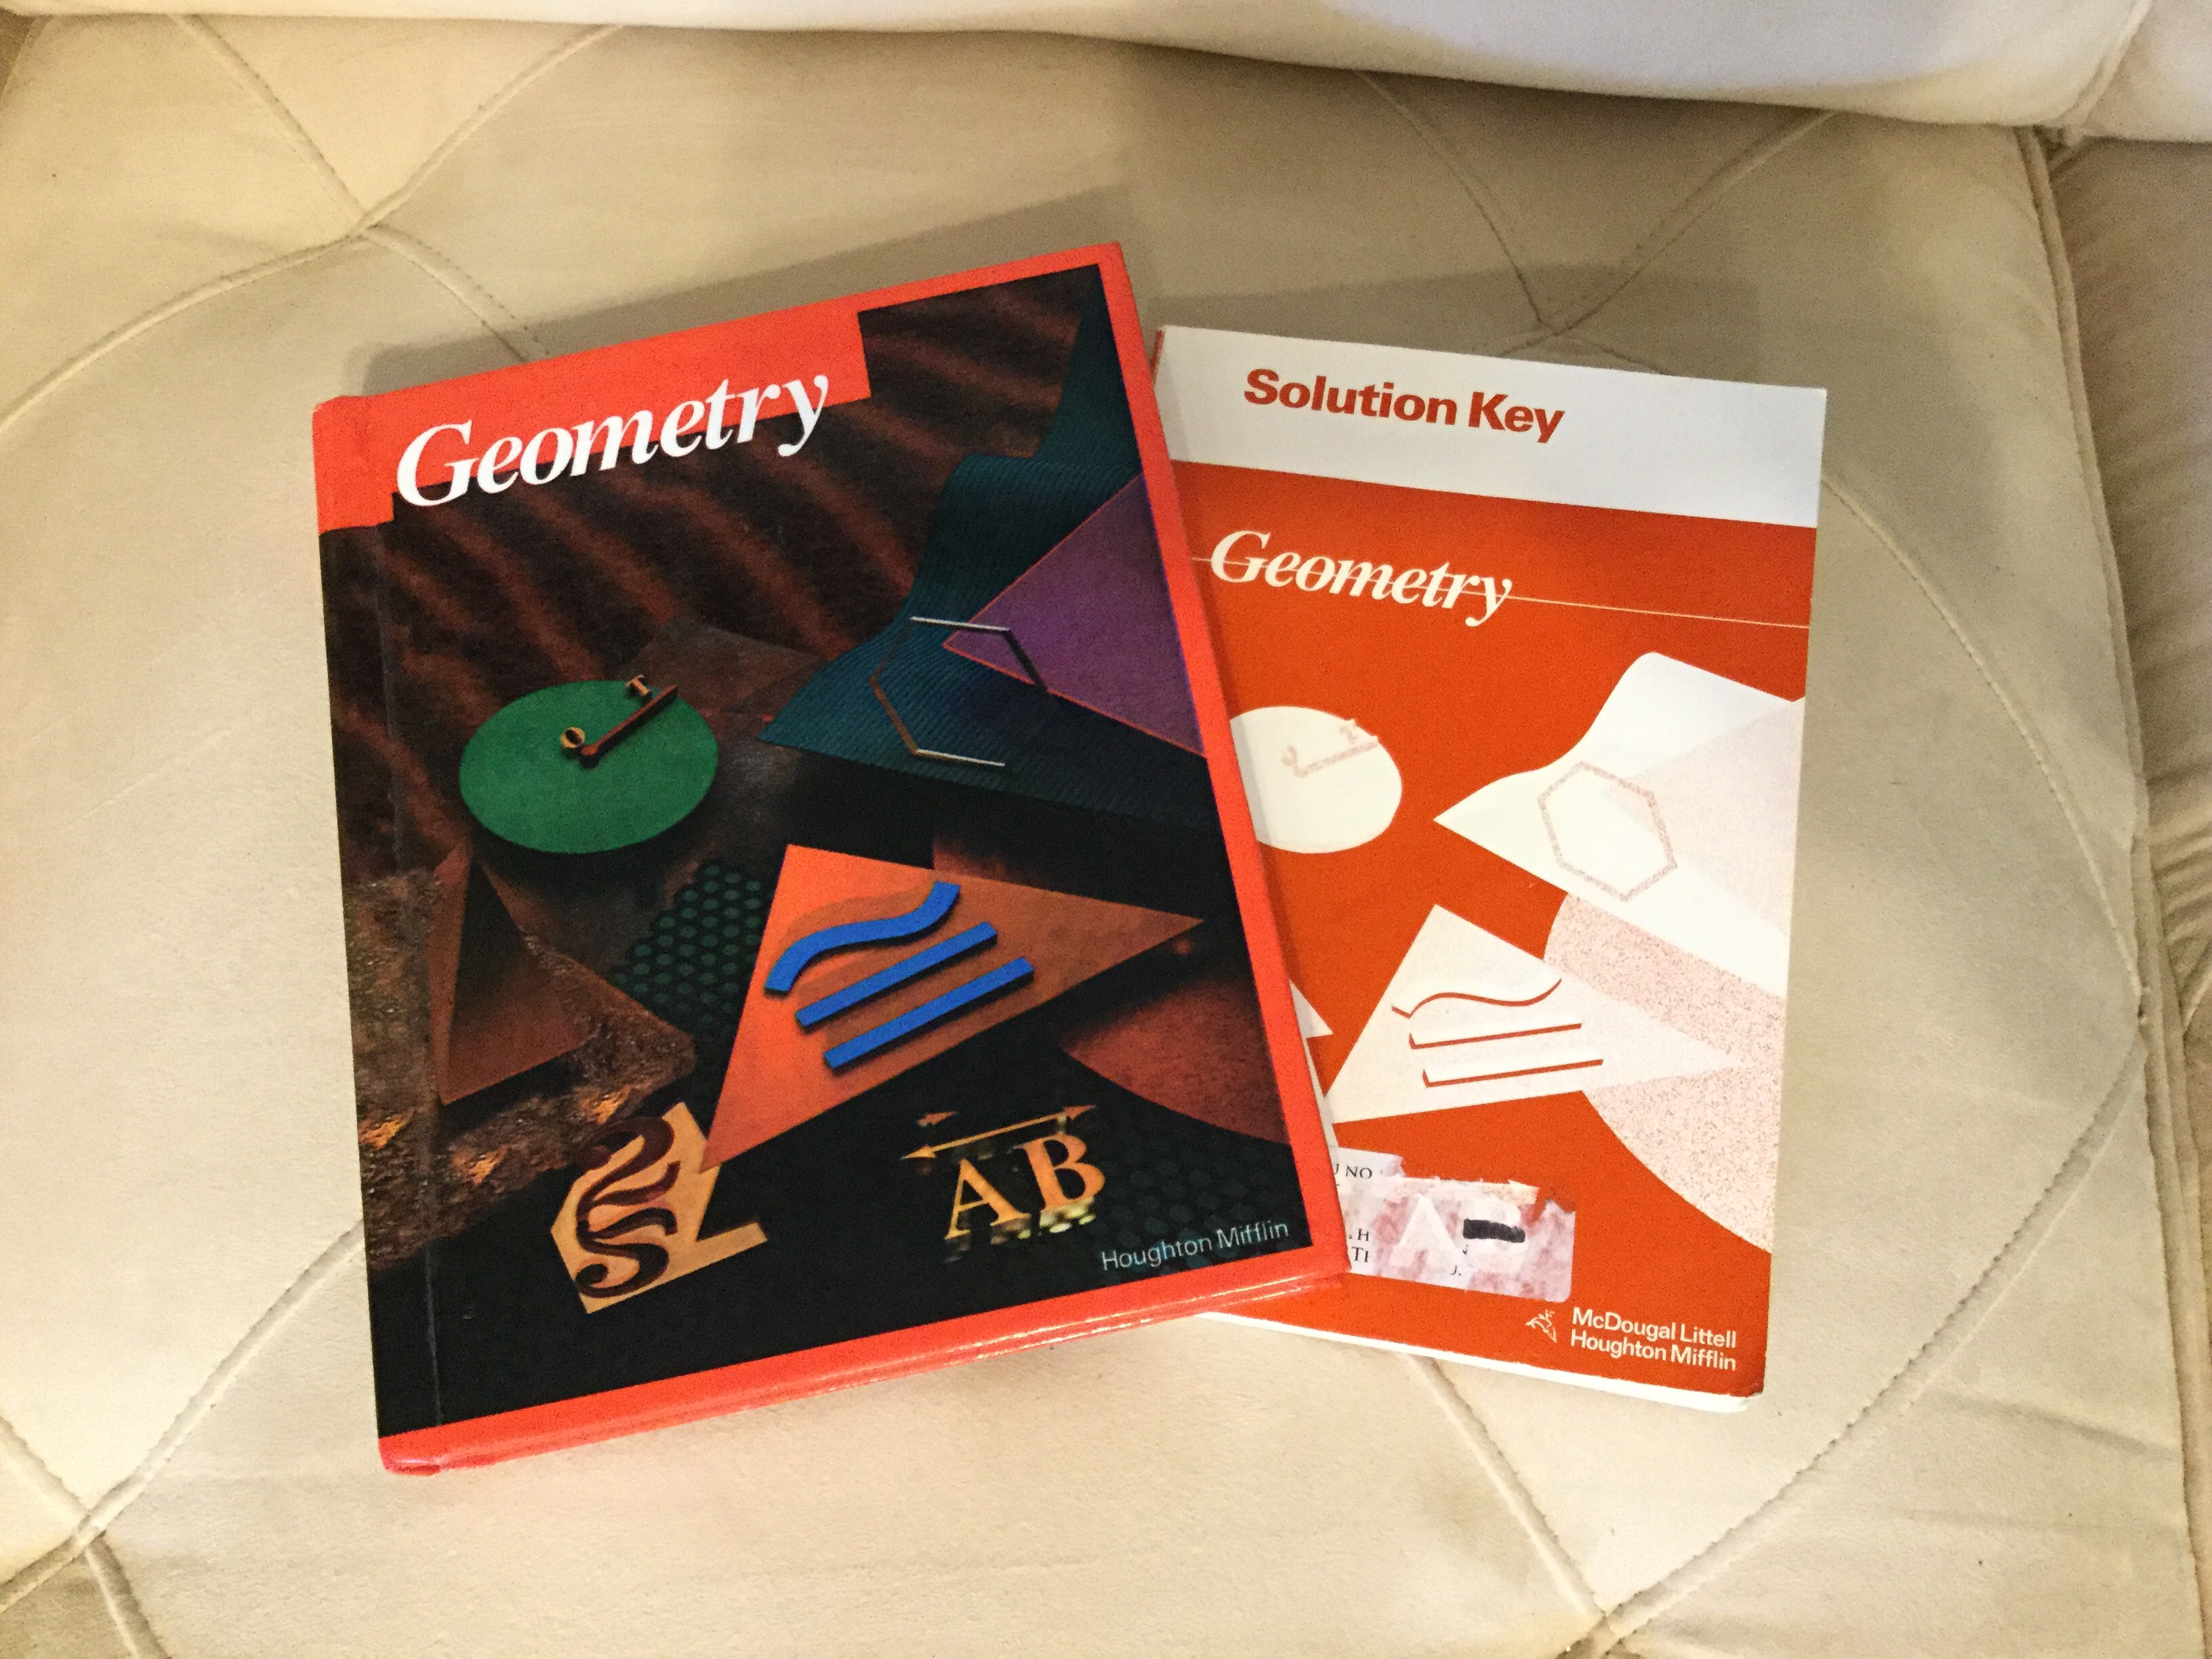 Houghton Mifflin Geometry Amp Solutions Key 65 Leah